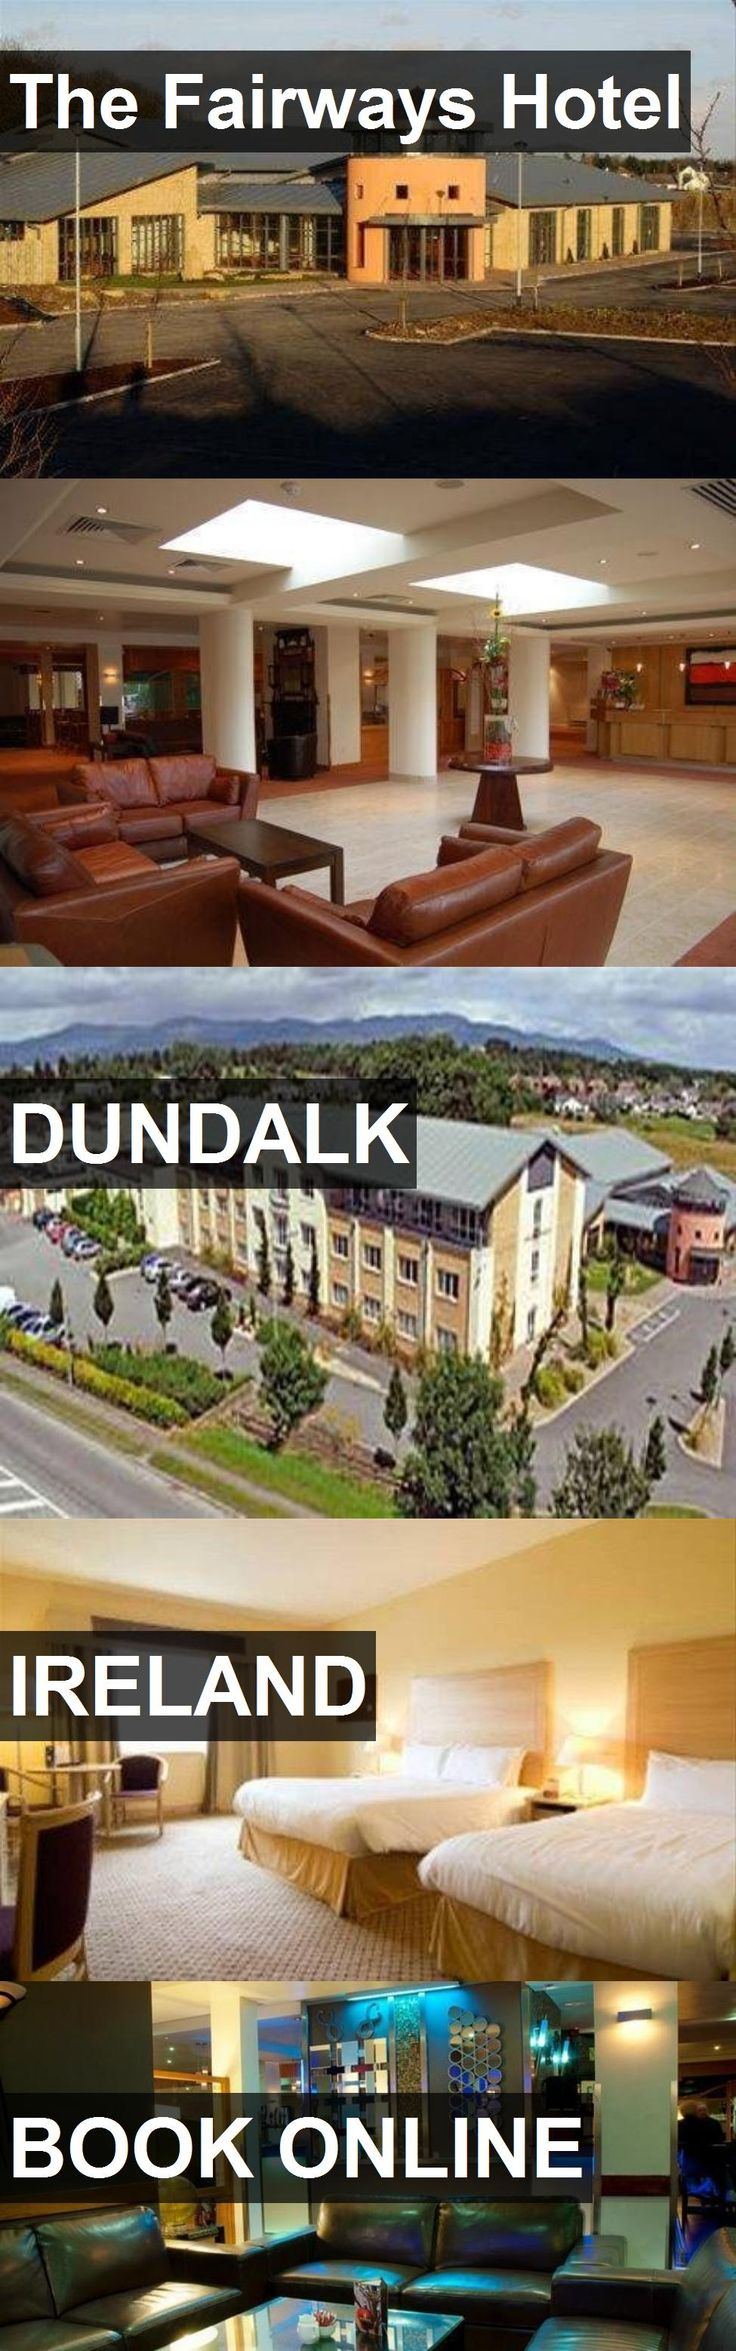 Hotel The Fairways Hotel in Dundalk, Ireland. For more information, photos, reviews and best prices please follow the link. #Ireland #Dundalk #TheFairwaysHotel #hotel #travel #vacation